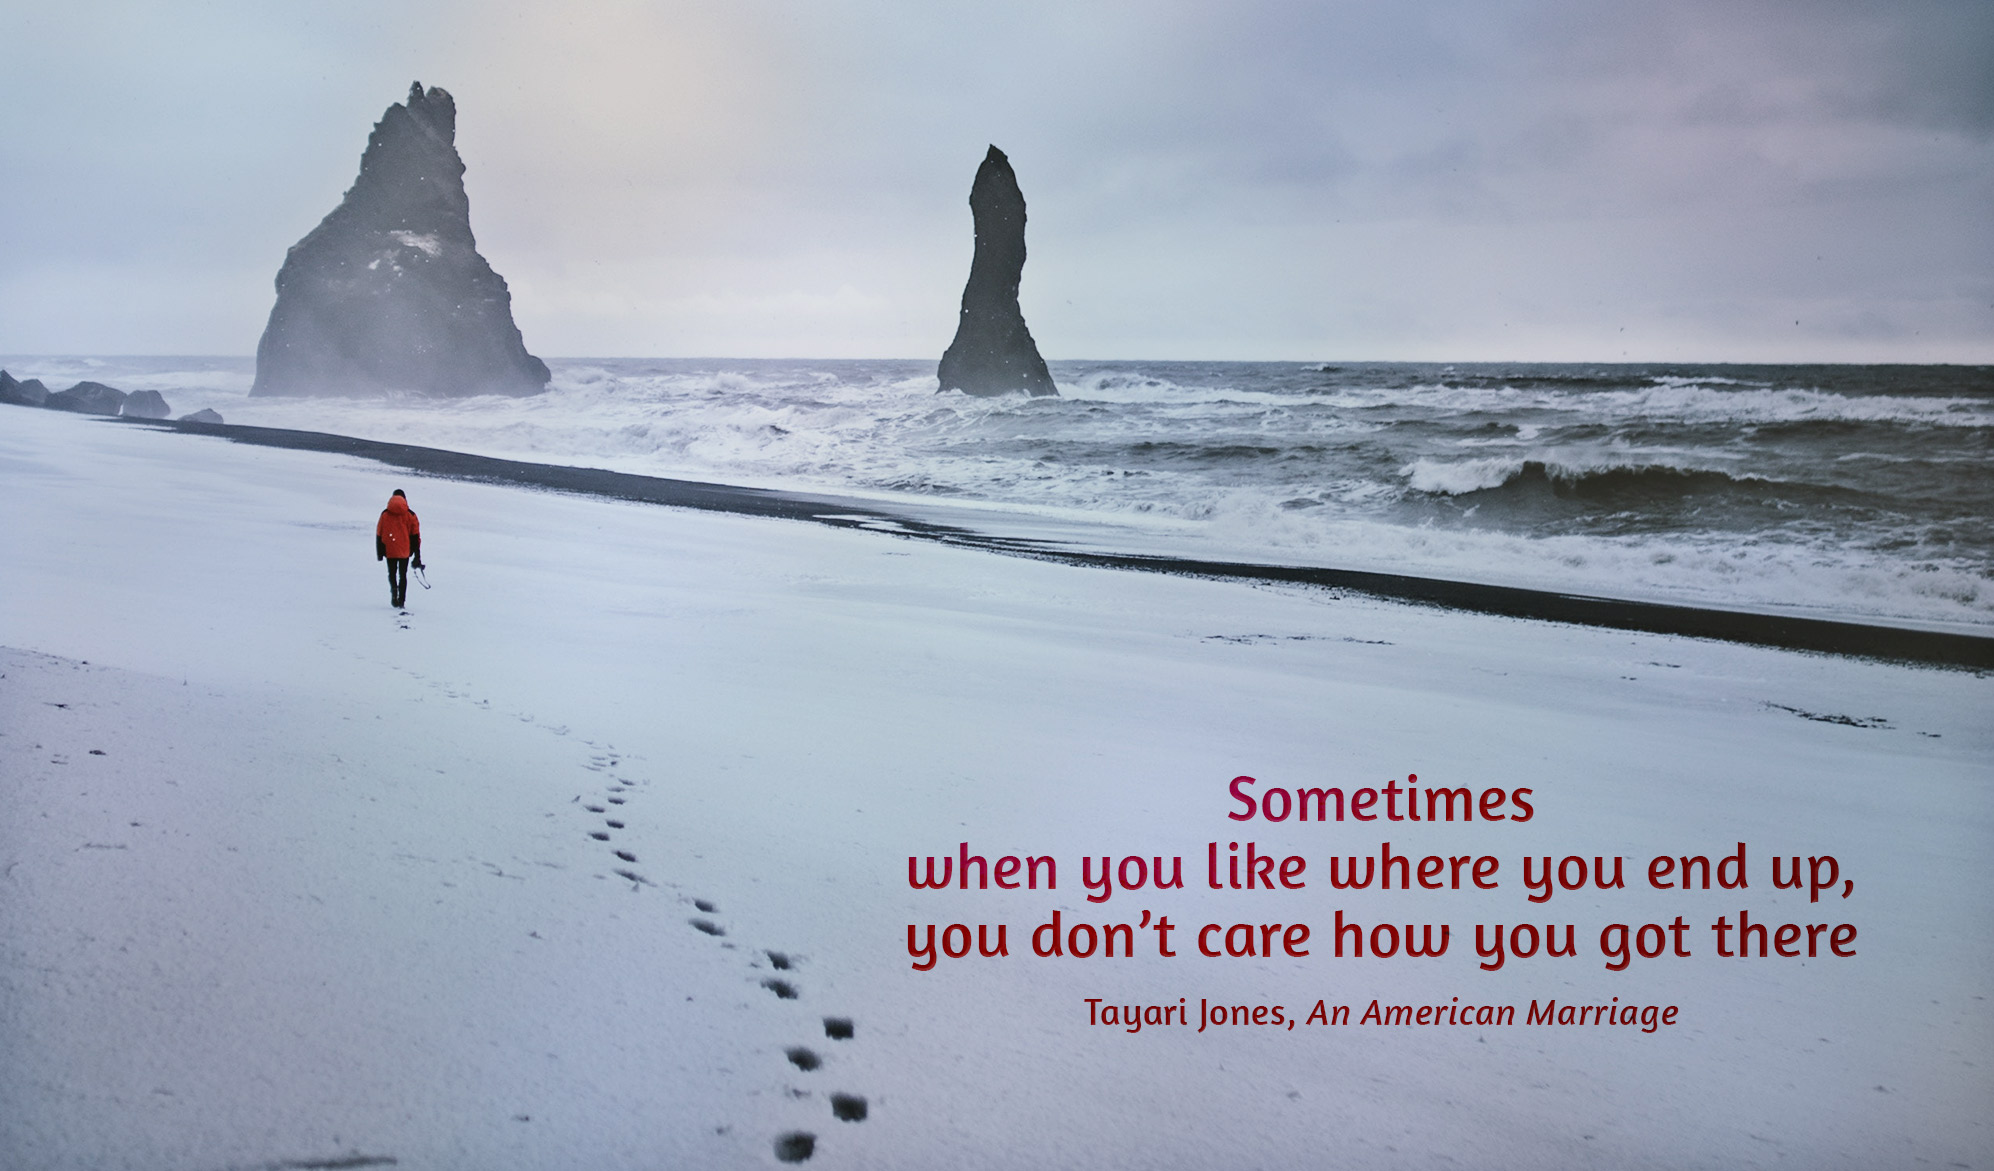 daily inspirational quote image: an Icelandic beach with a man walking in the distance